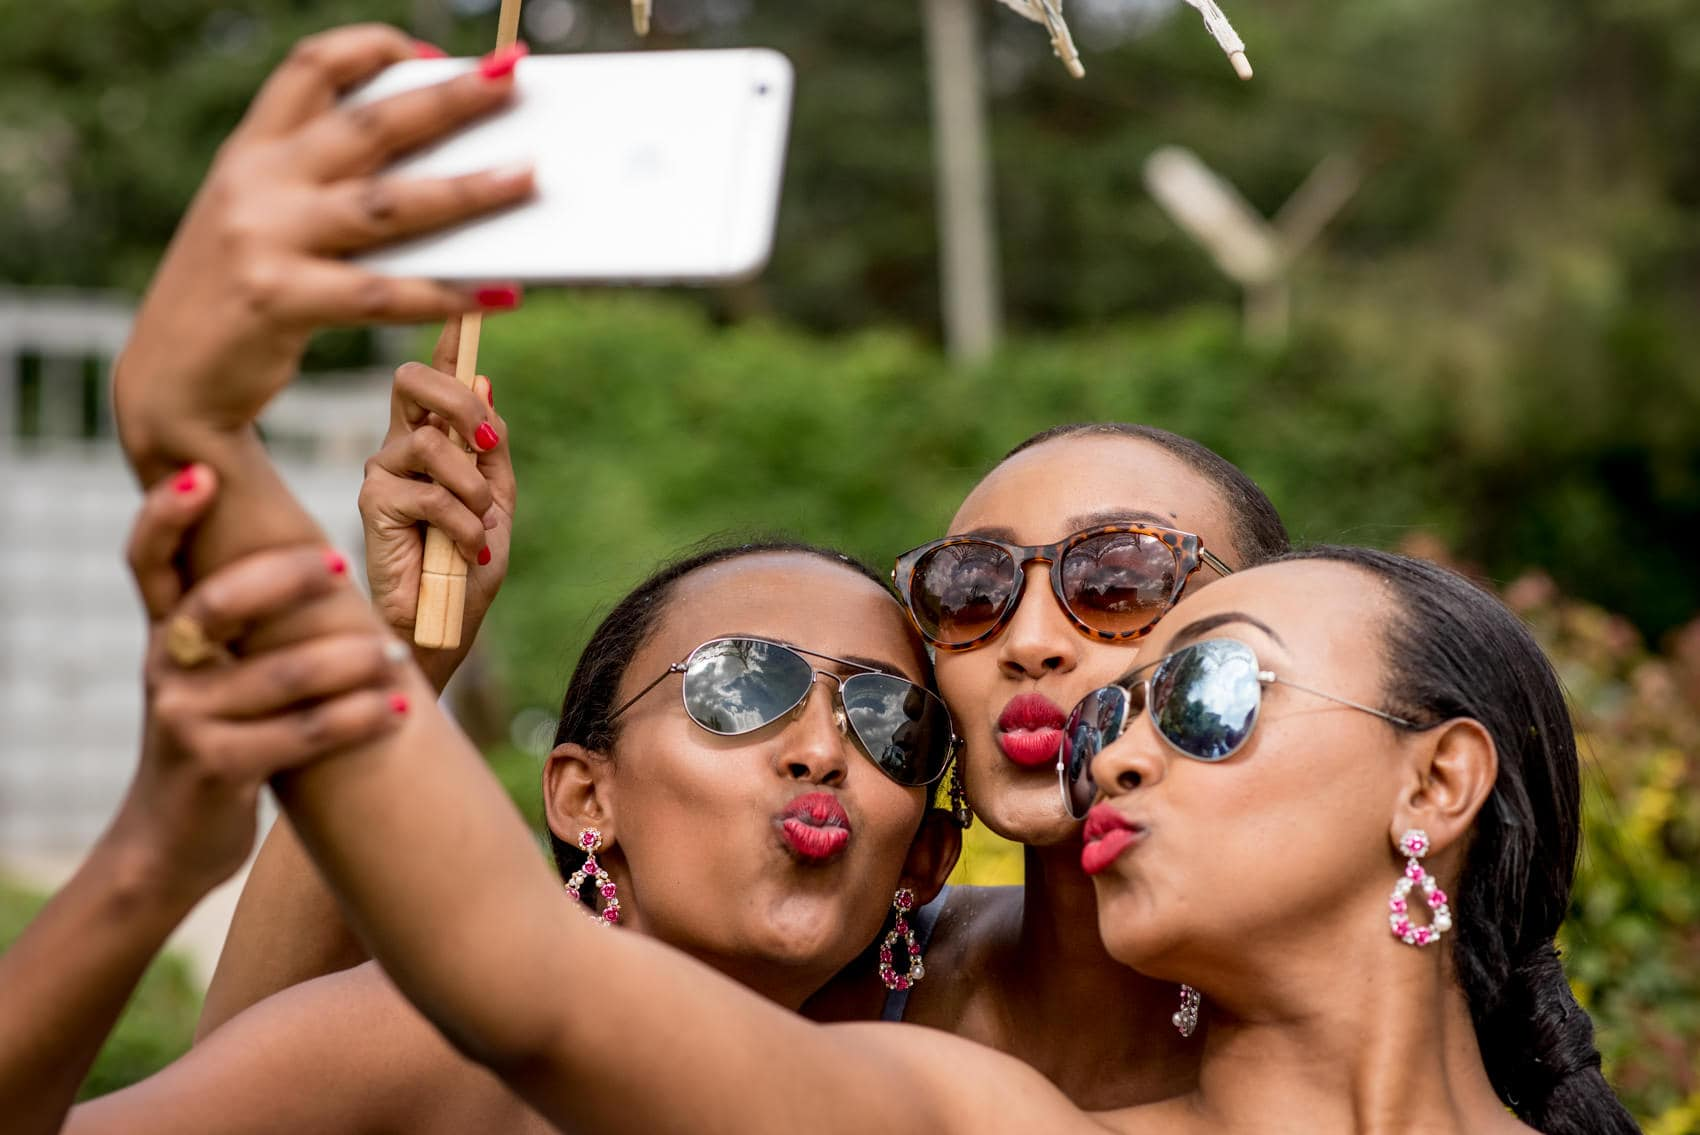 Ethiopian wedding selfy